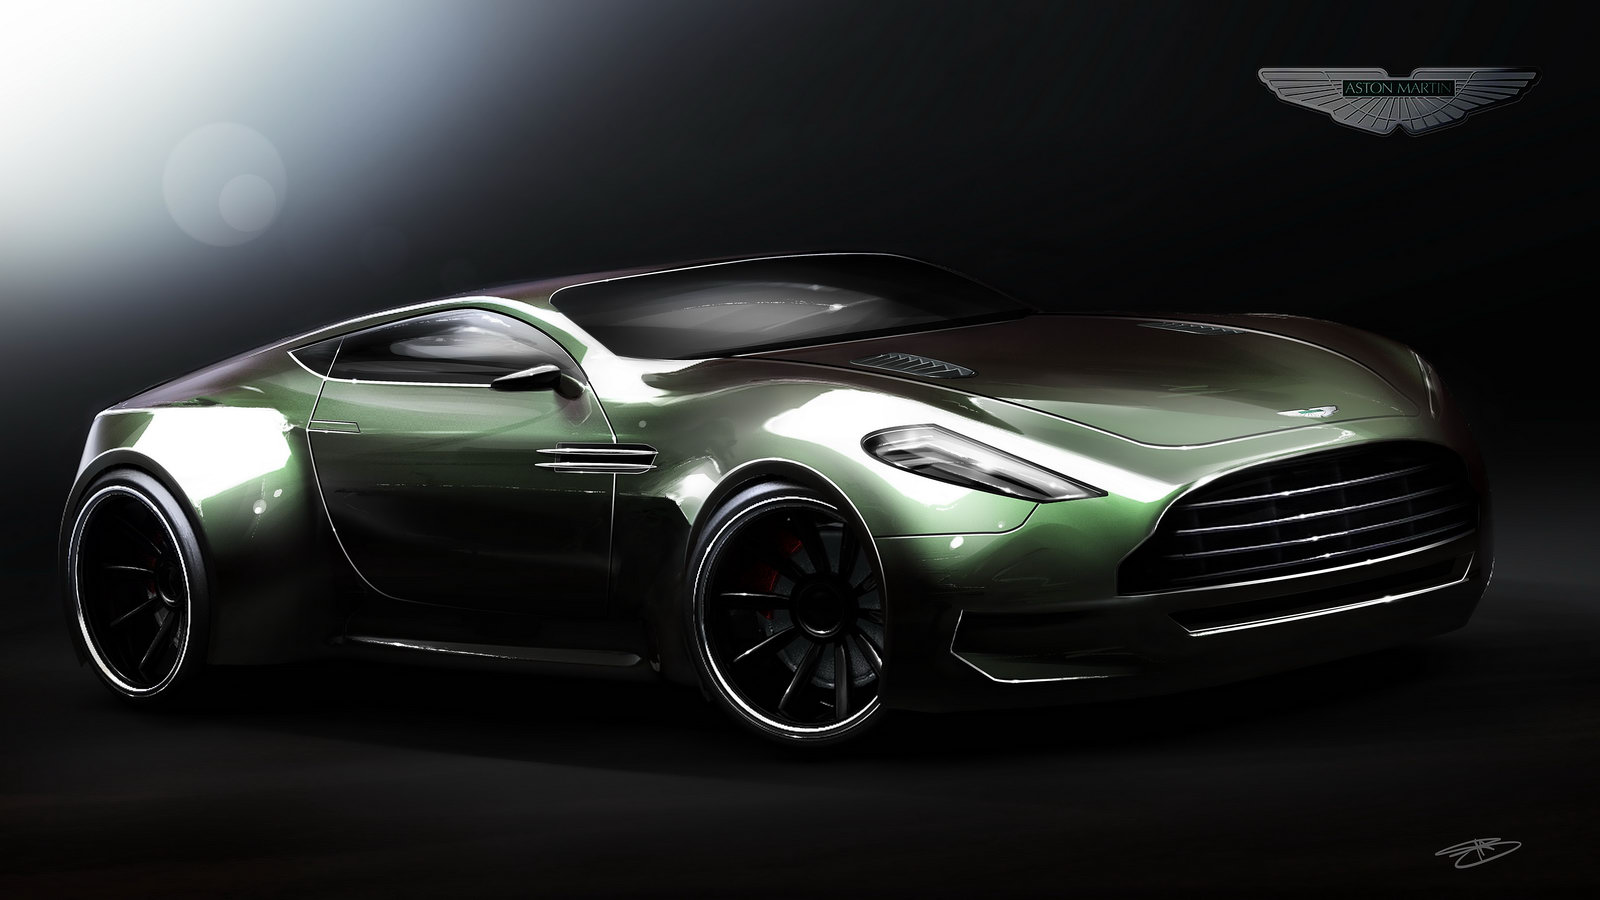 Aston Martin Veloce Design Study HD Wallpaper